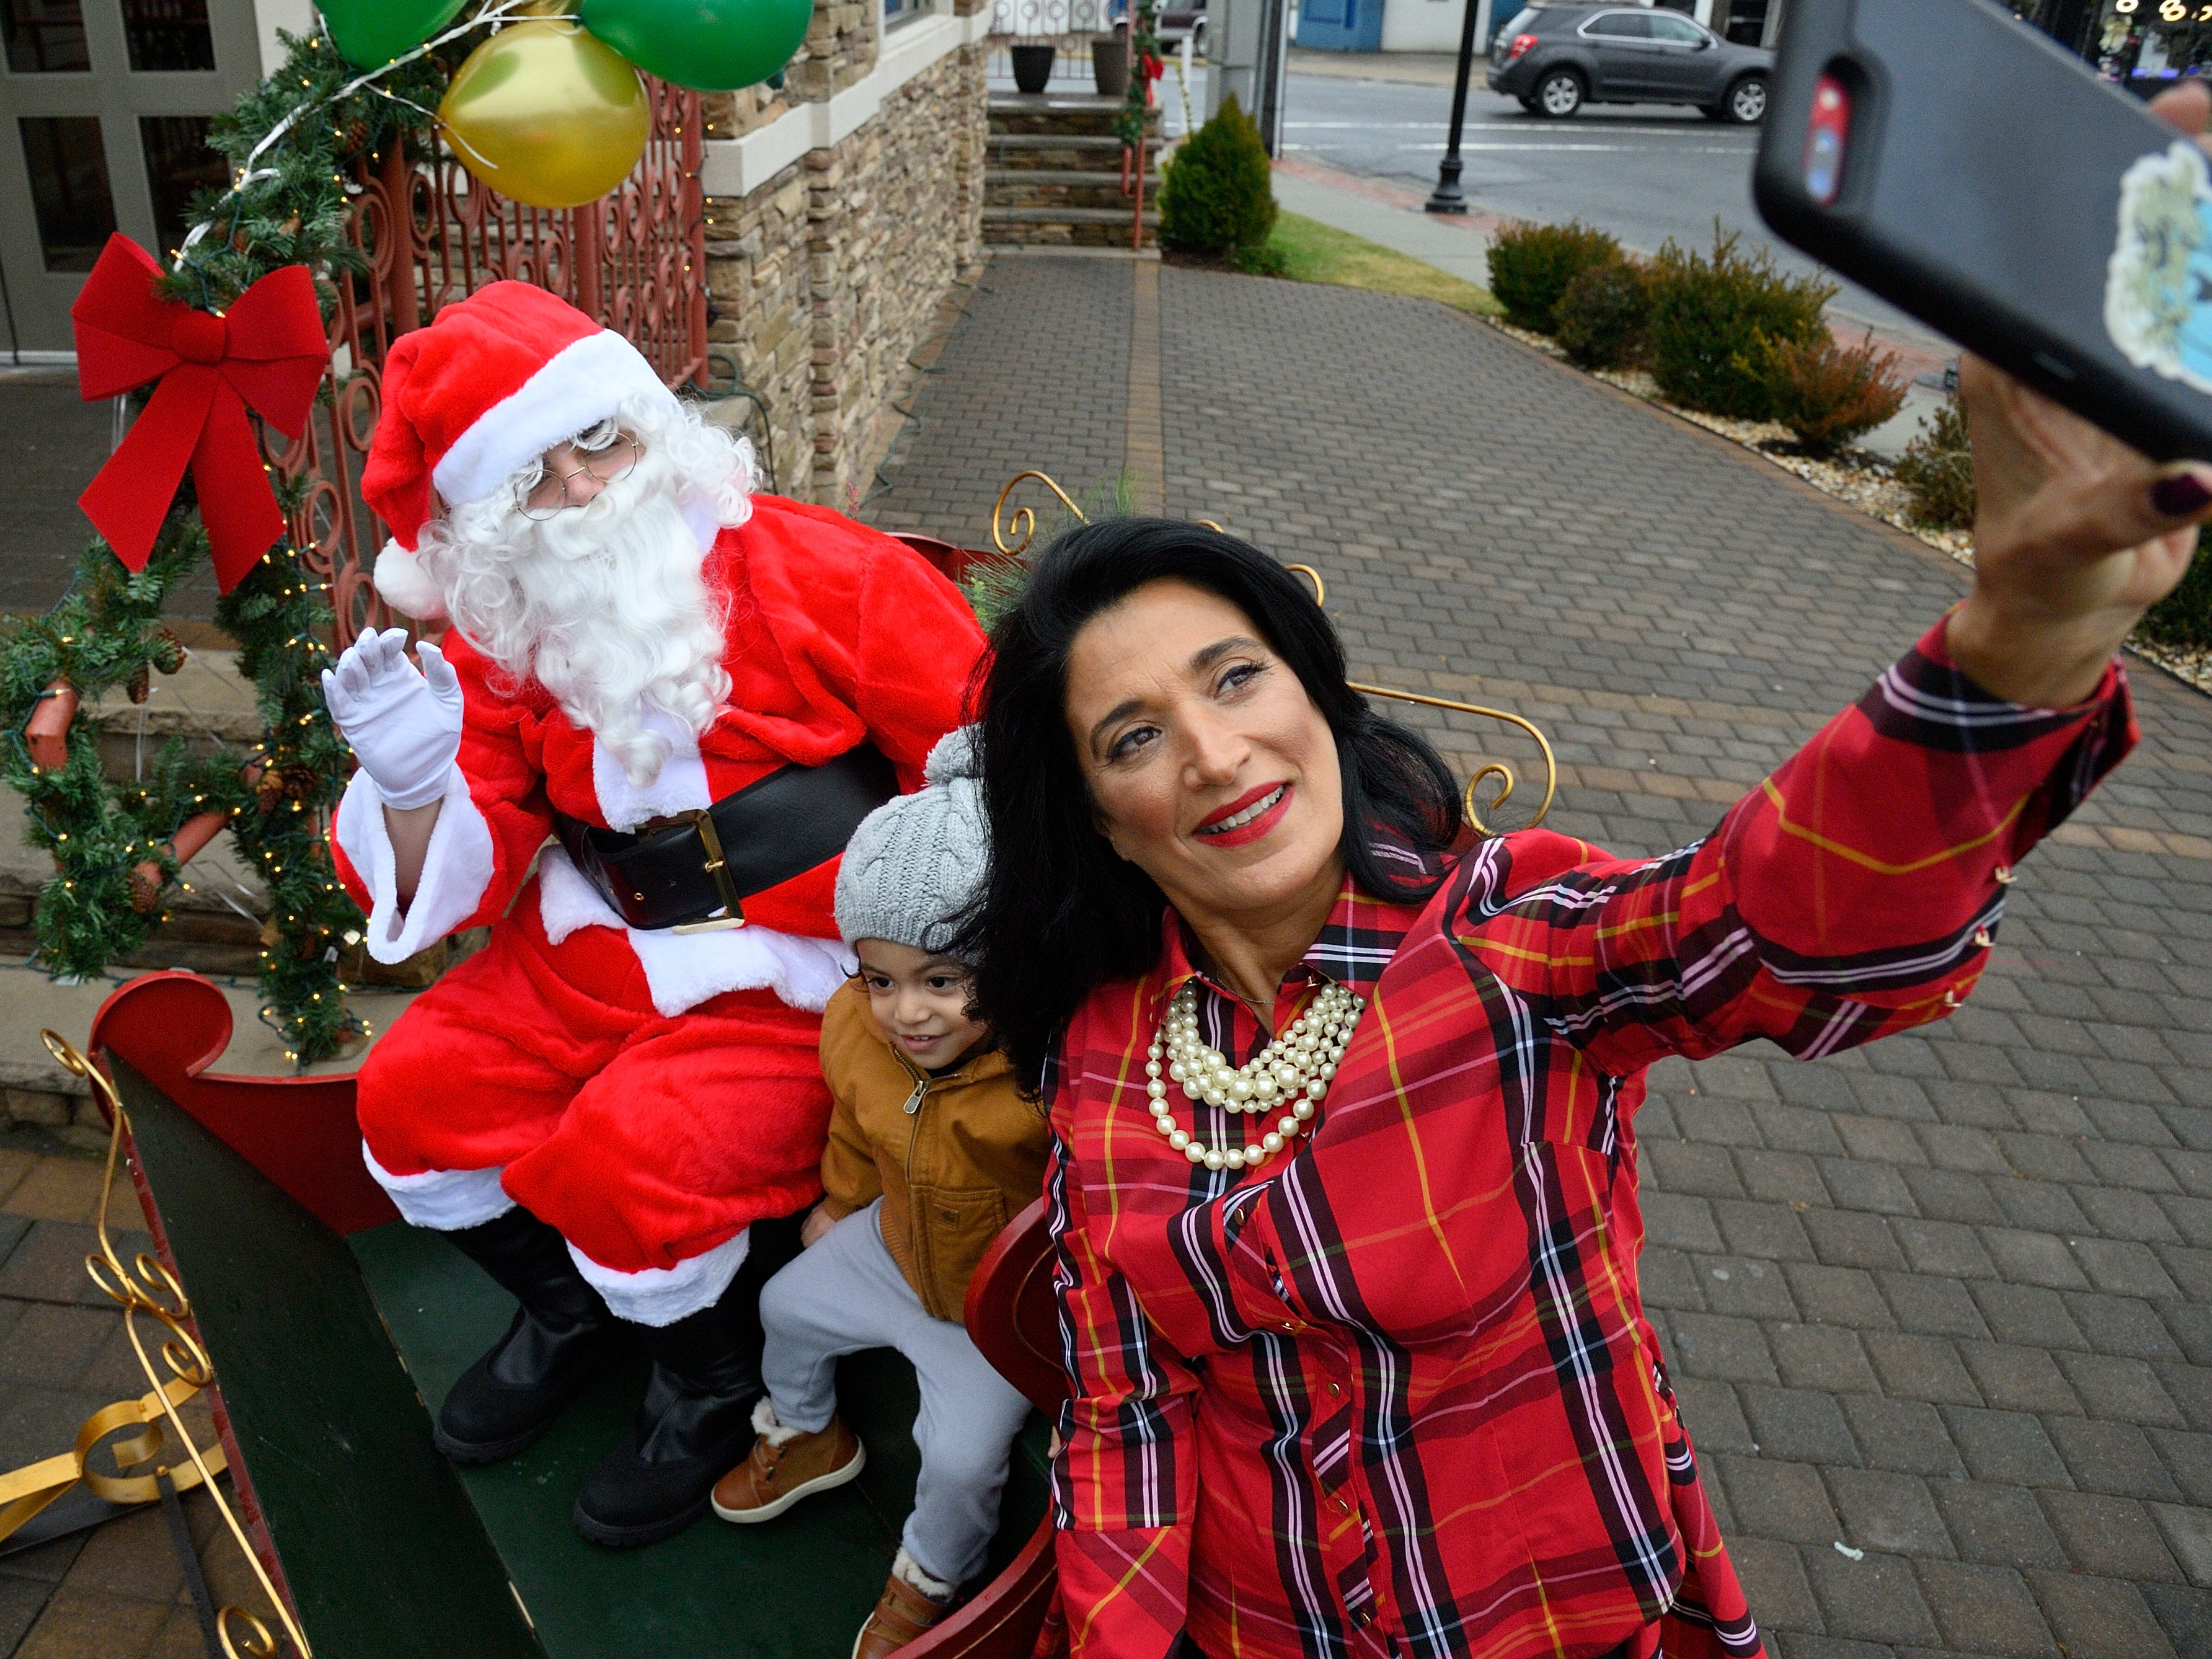 Canclewyck Diner owner Vasilia Logothetis takes a selfie with and Santa and  Gabriel Perez, 3, of Garfield on Saturday, Dec. 15, 2018